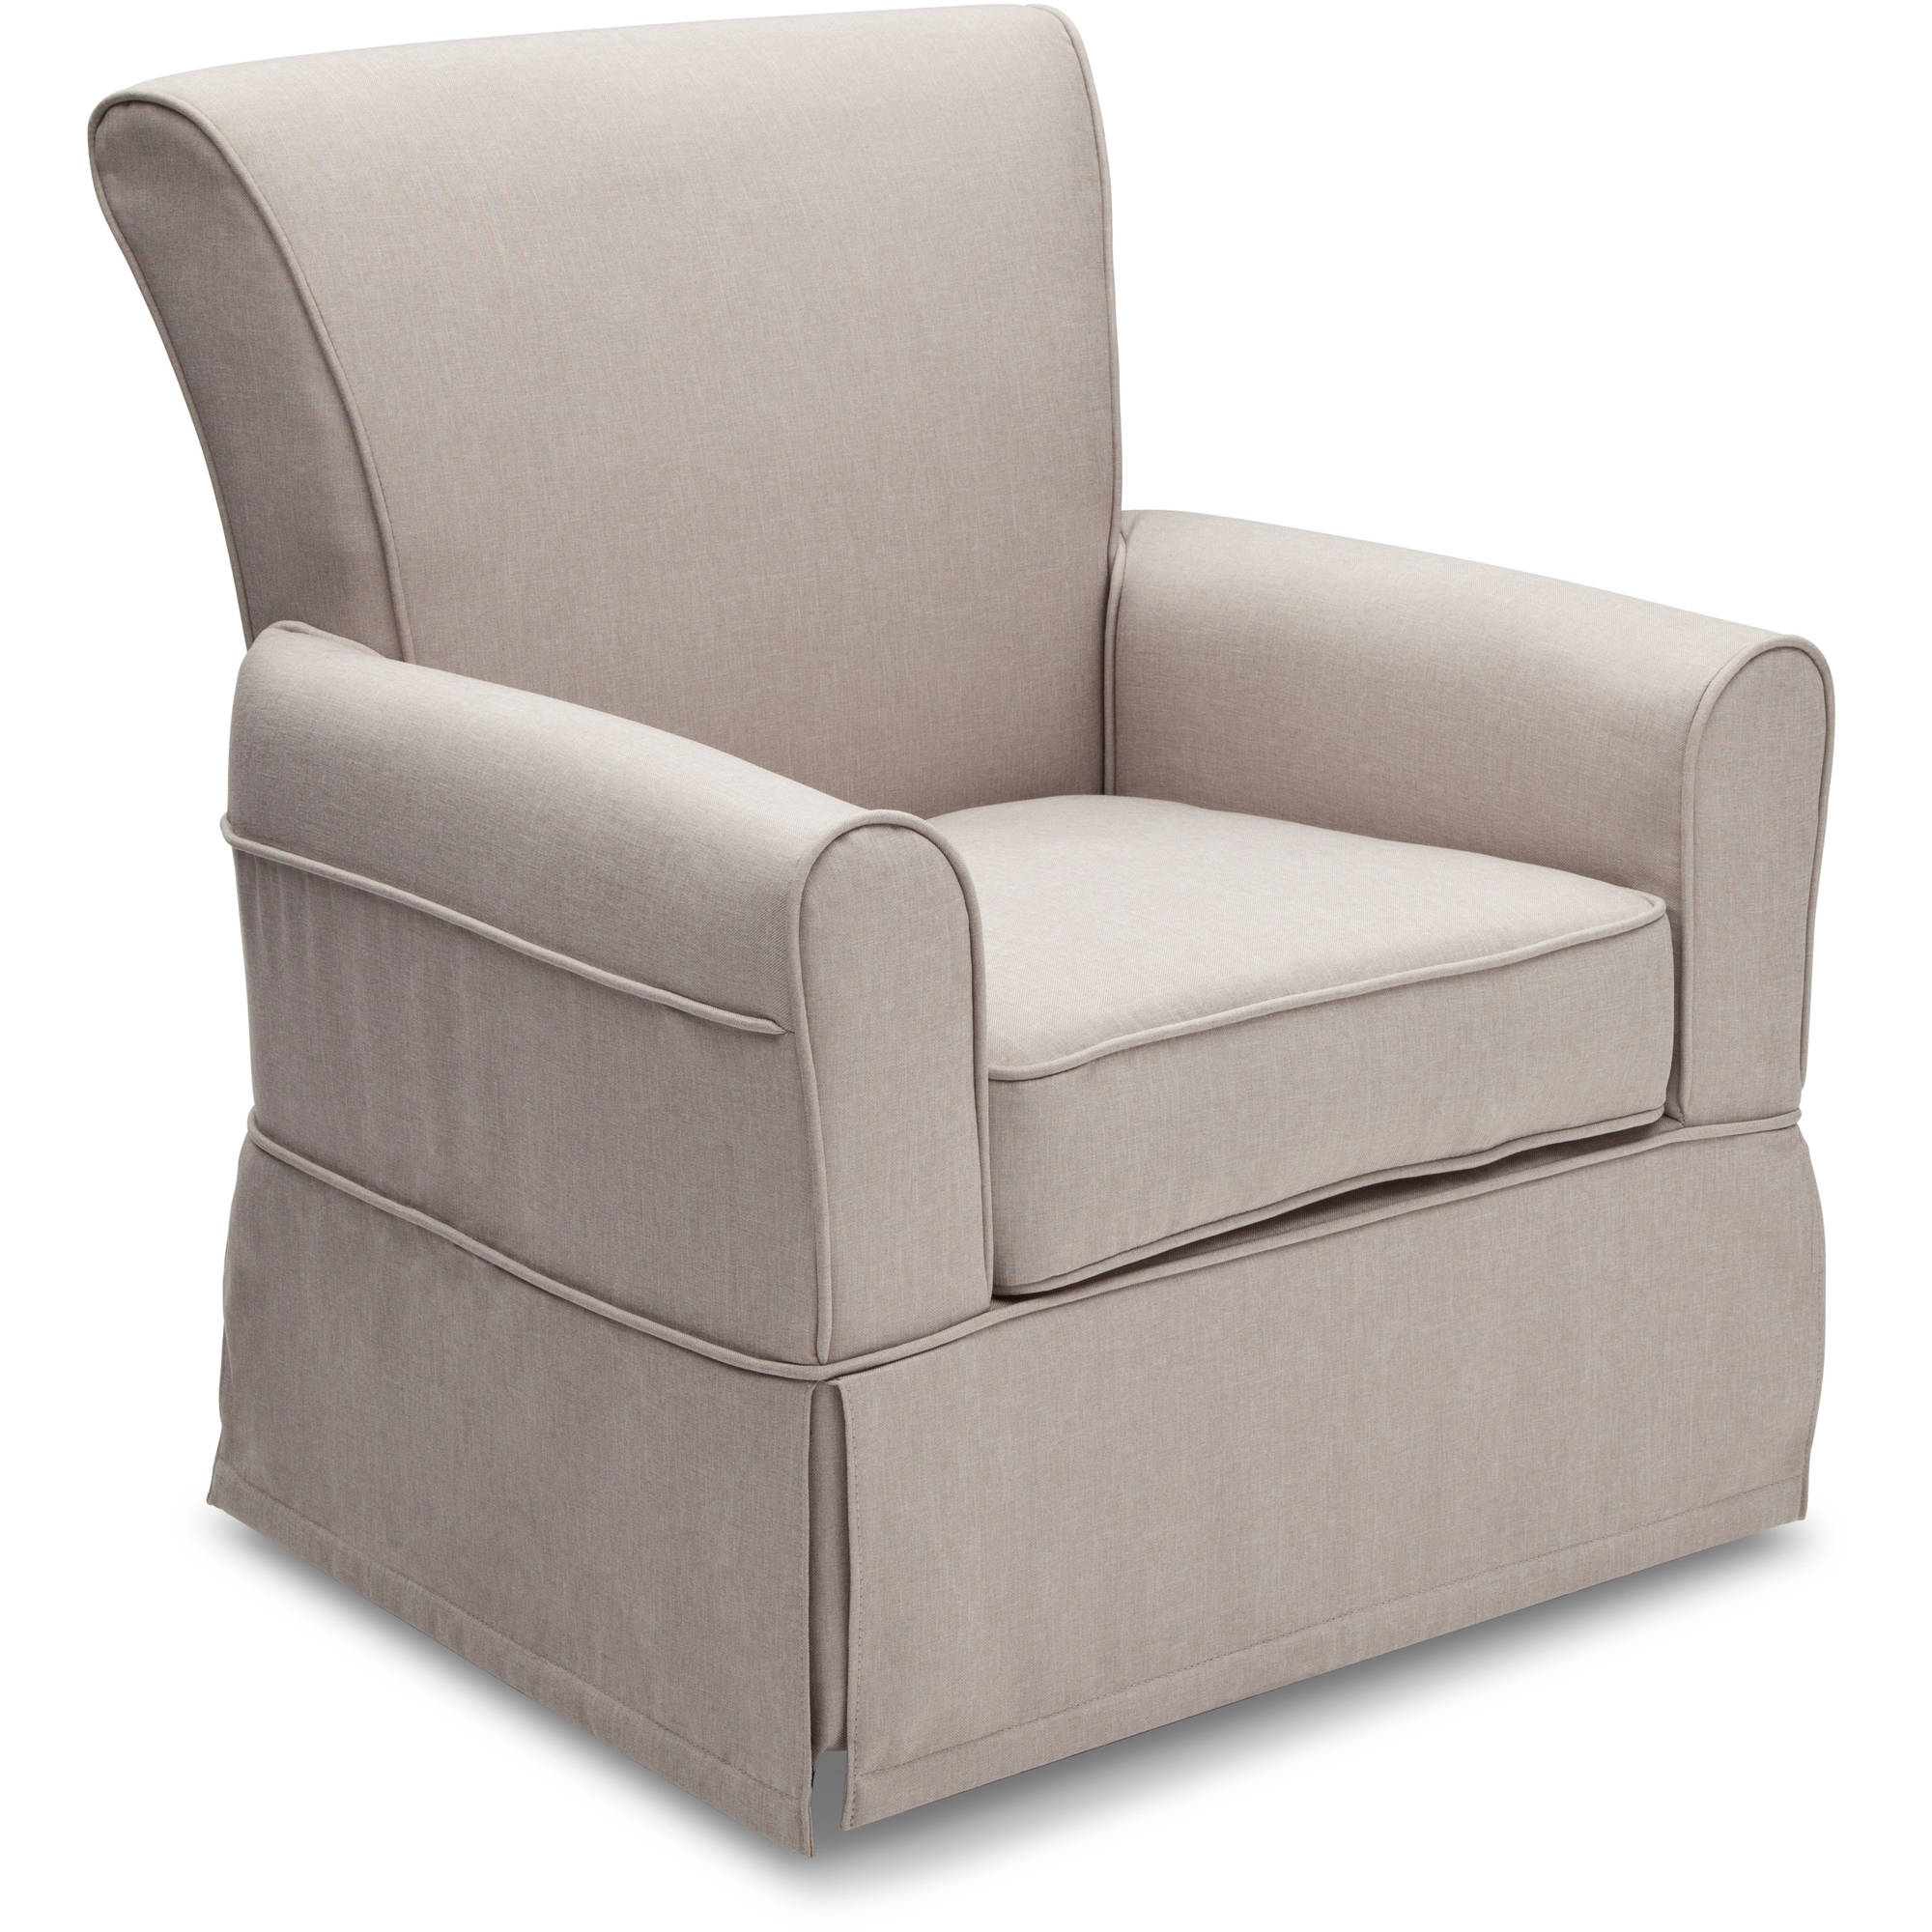 Delta Children Epic Nursery Glider Swivel Rocker Chair, Taupe